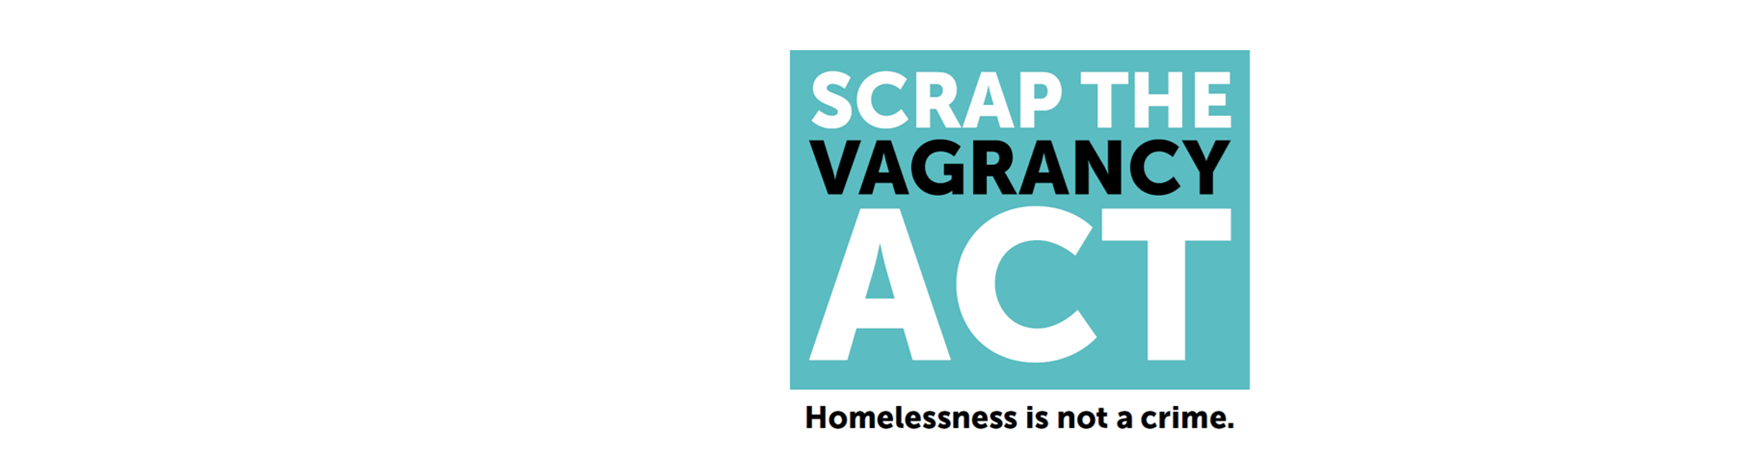 Scrap the Vagrancy Act: Homelessness is not a crime